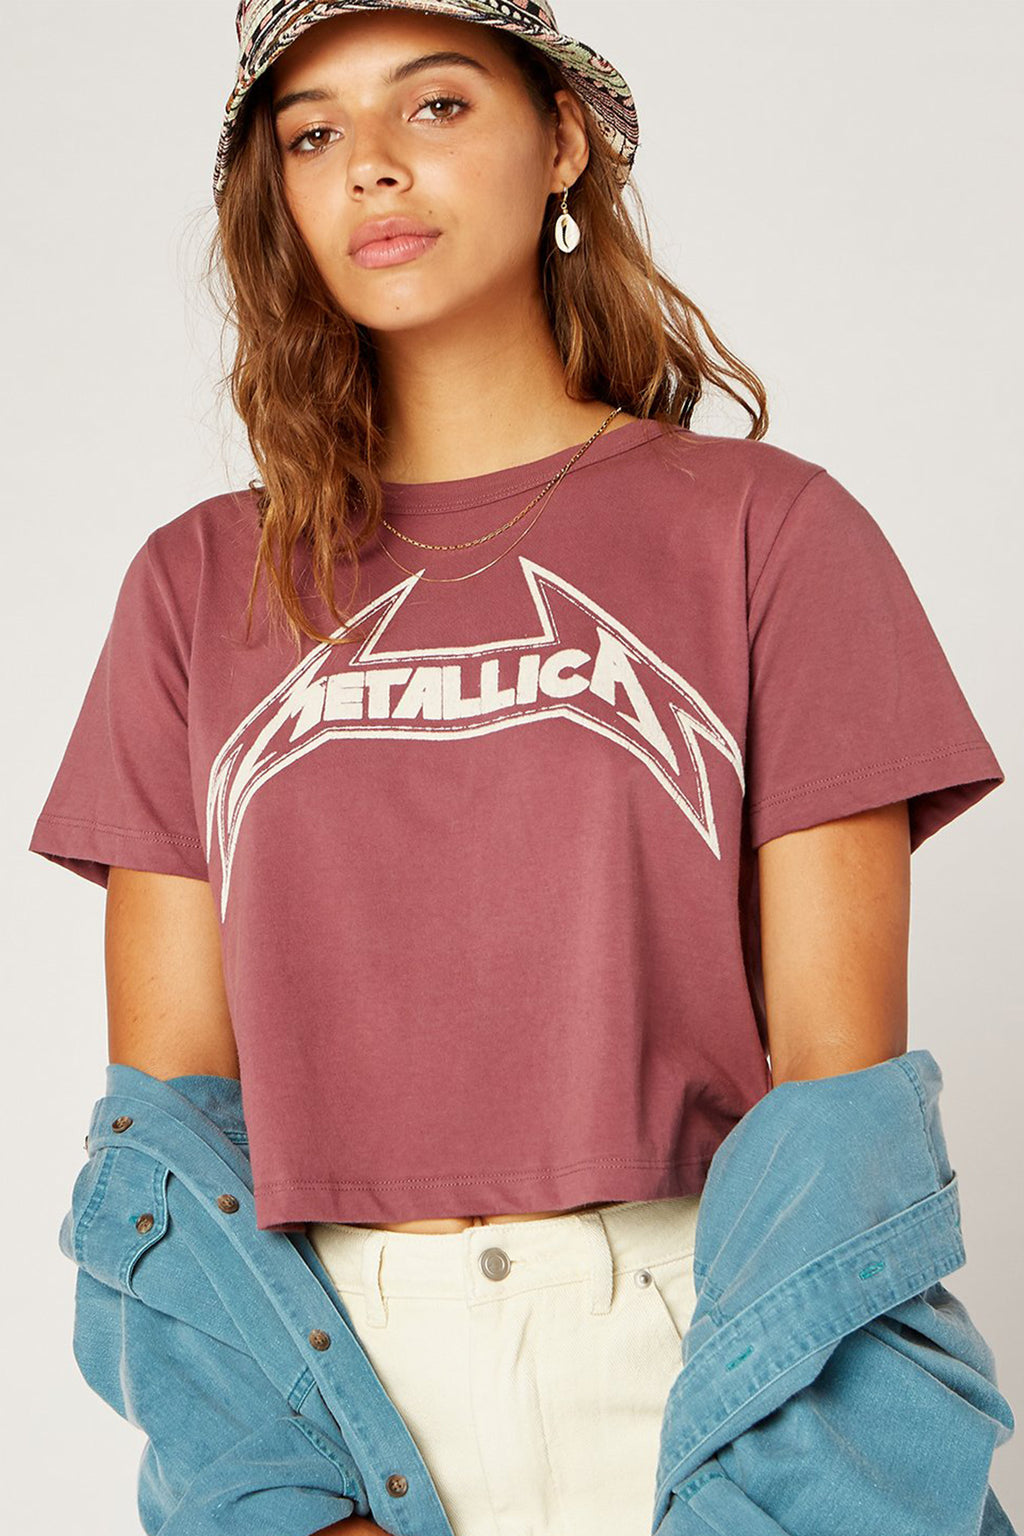 Metallica Young Metal Rebel Crop Tee - Boho Bum Island Clothing Swimwear Bohemian Boho west palm beach  Miami florida  fall fashion spring fashion online shopping ootd blogger style swim boutique